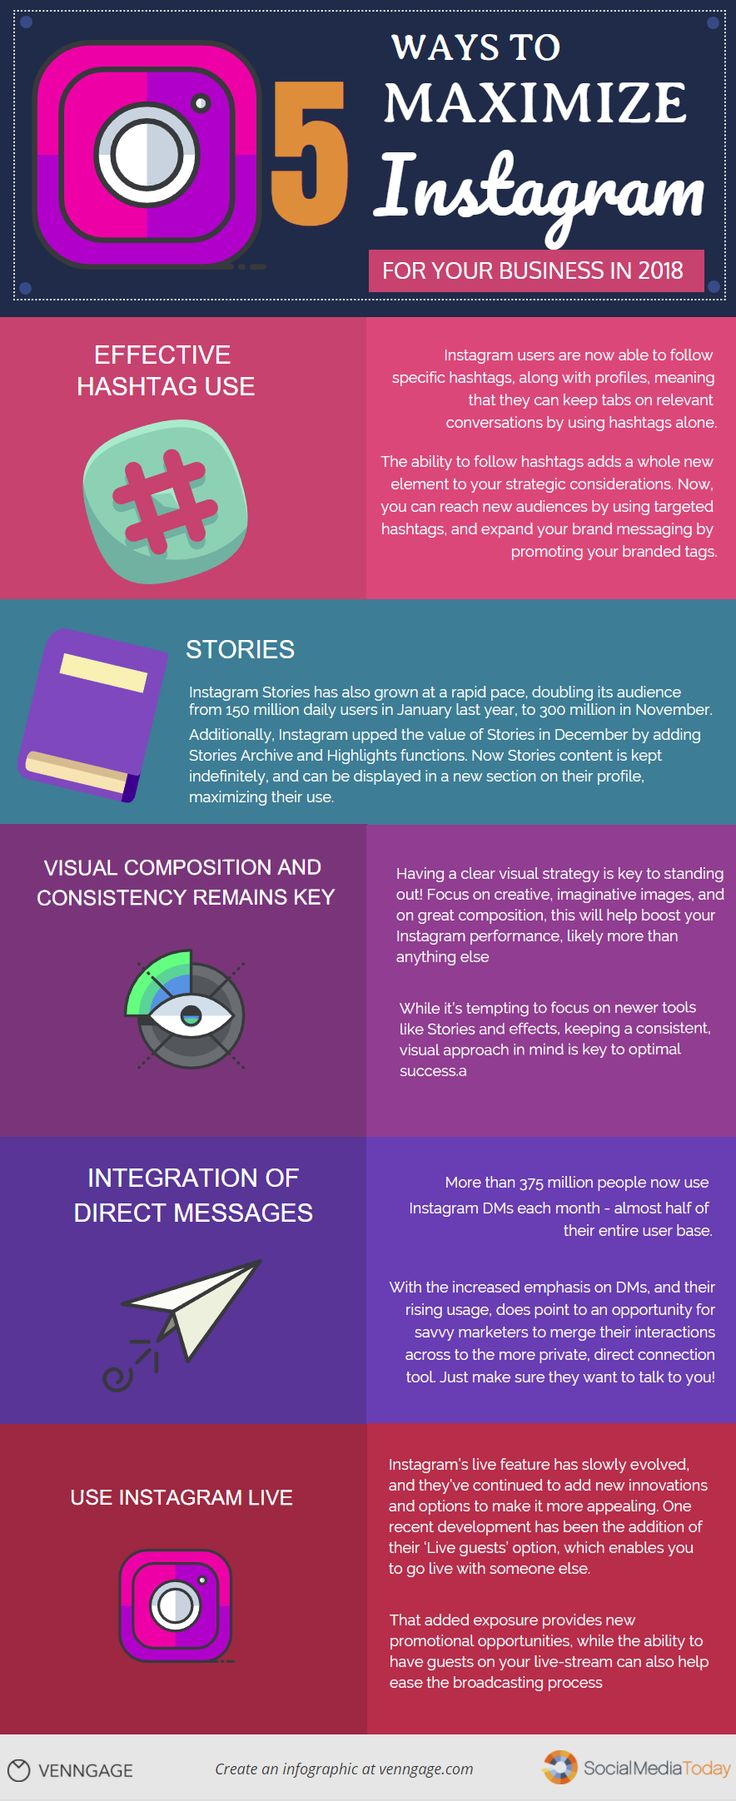 5 Ways to Maximize Instagram for Your Business in 2018 #Infographic #Business #ContentMarketing #SocialMedia